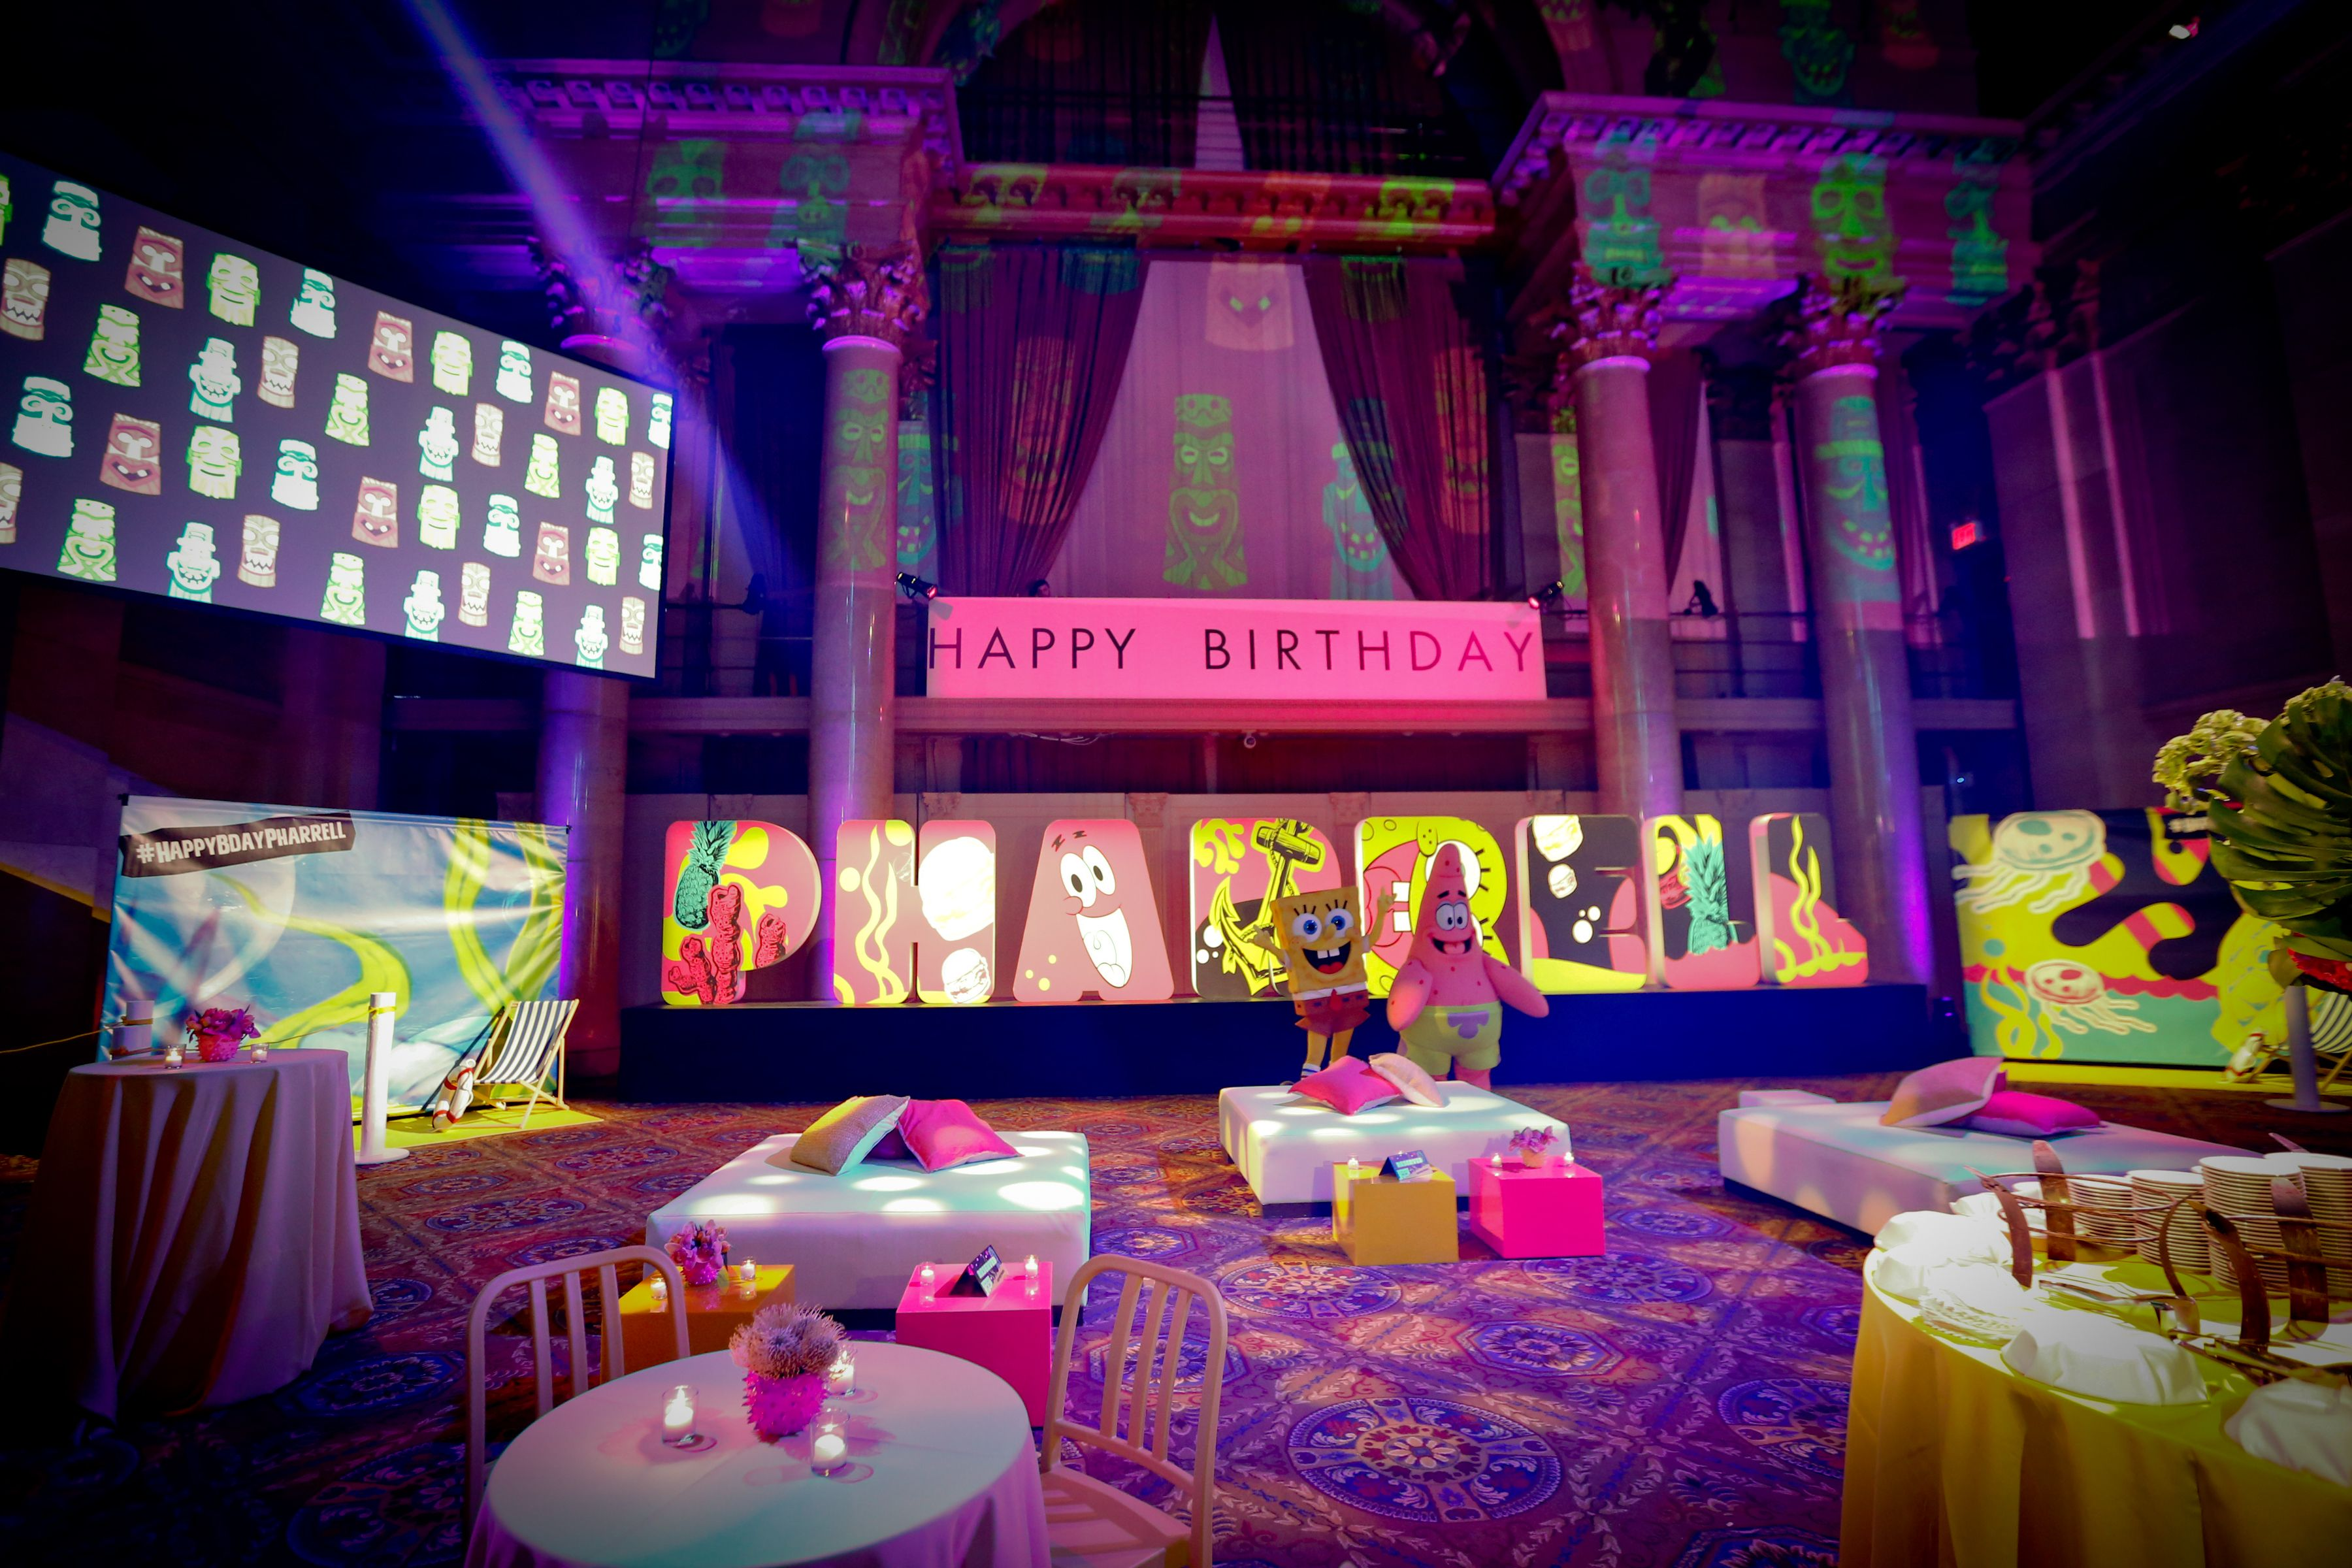 Creative Birthday Party Ideas: 4 Extravagant Event Themes Guests